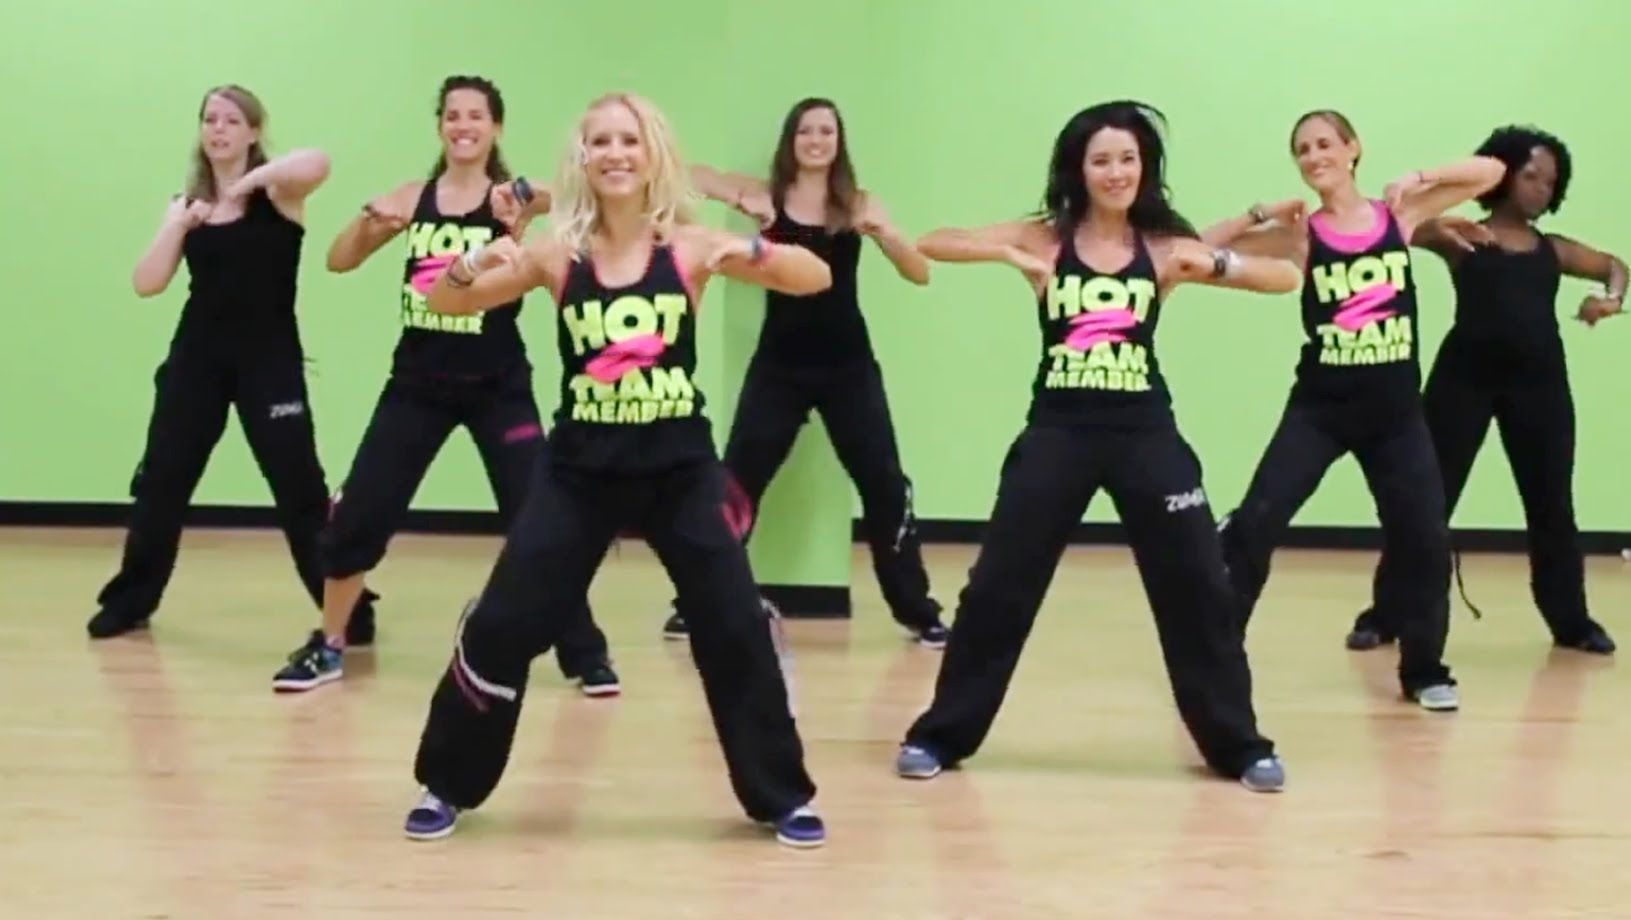 FREE Zumba Dance Video Workouts Online | Tone and Tighten